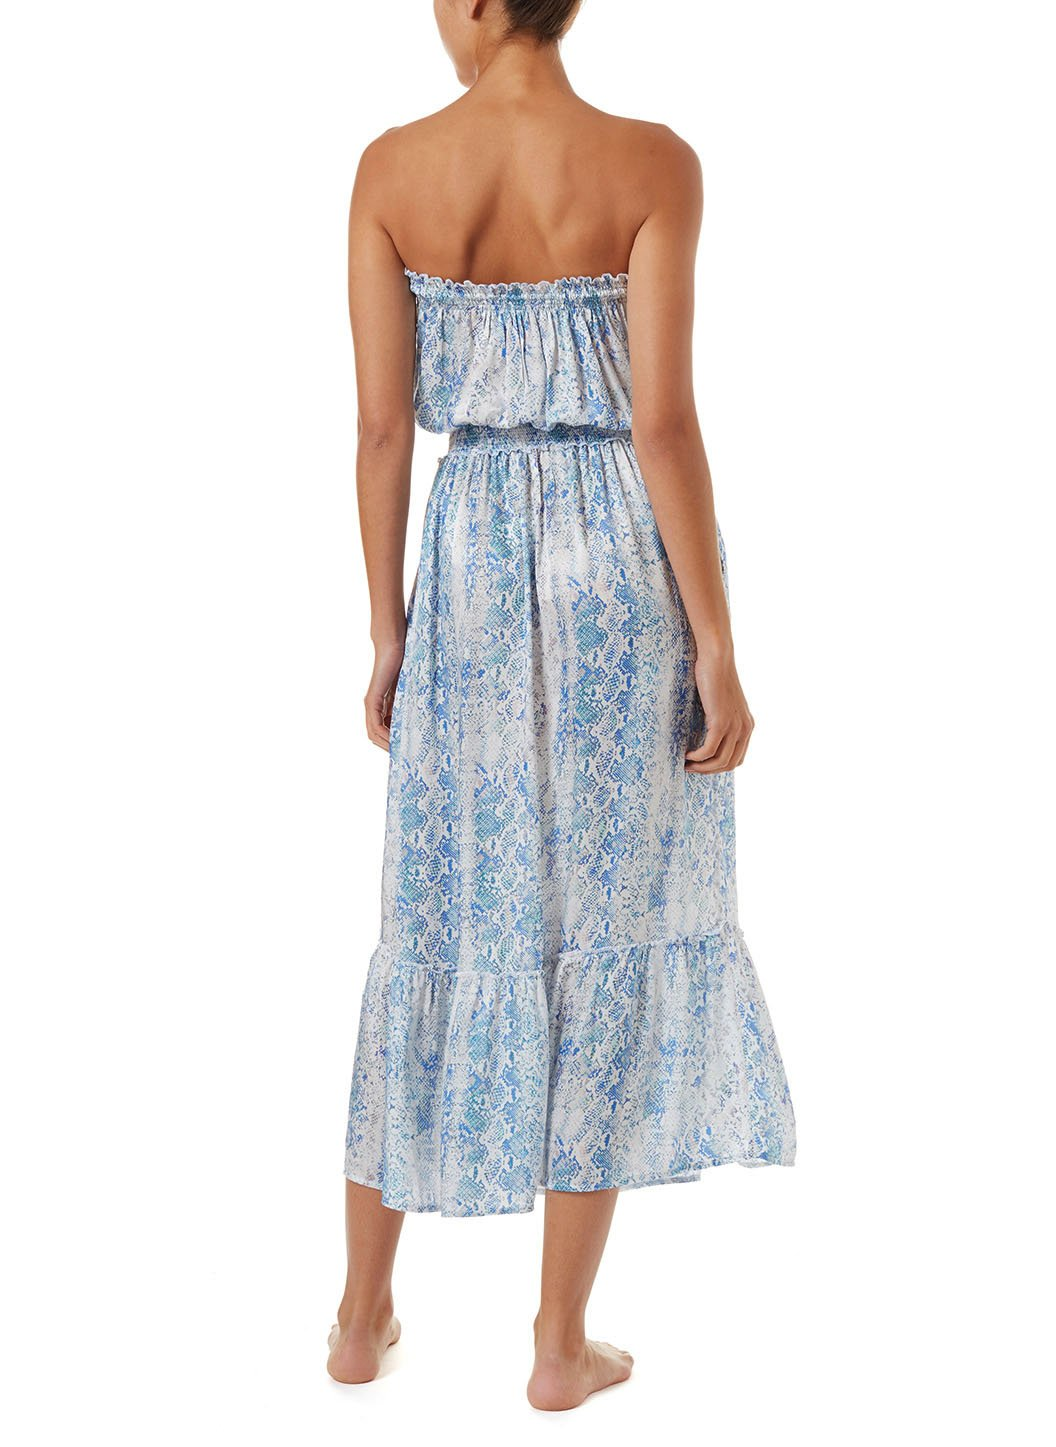 rachel serpente bandeau silk maxi dress 2019 B